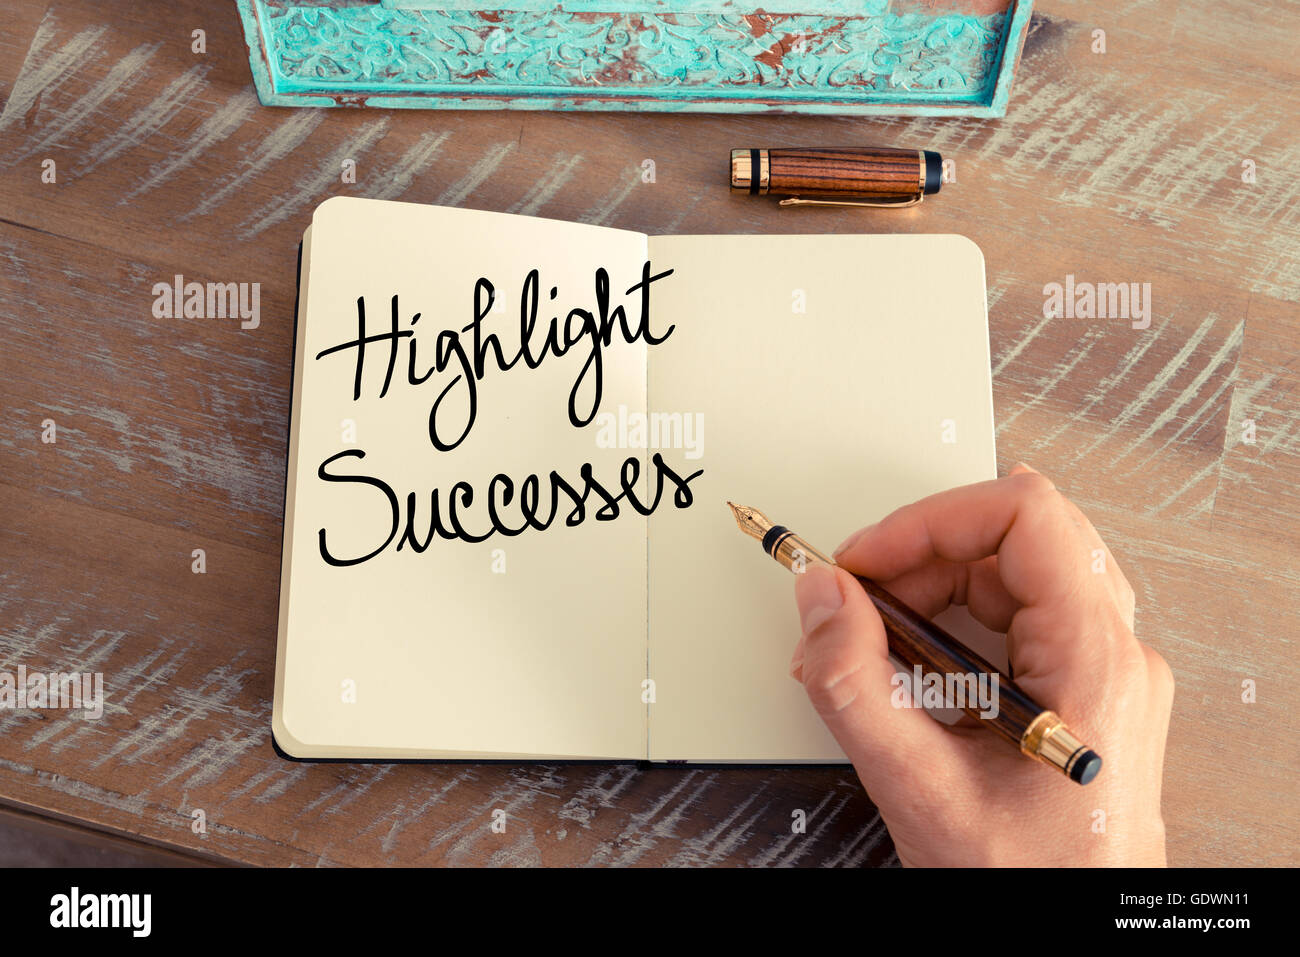 Handwritten text Highlight Successes as concept image. - Stock Image